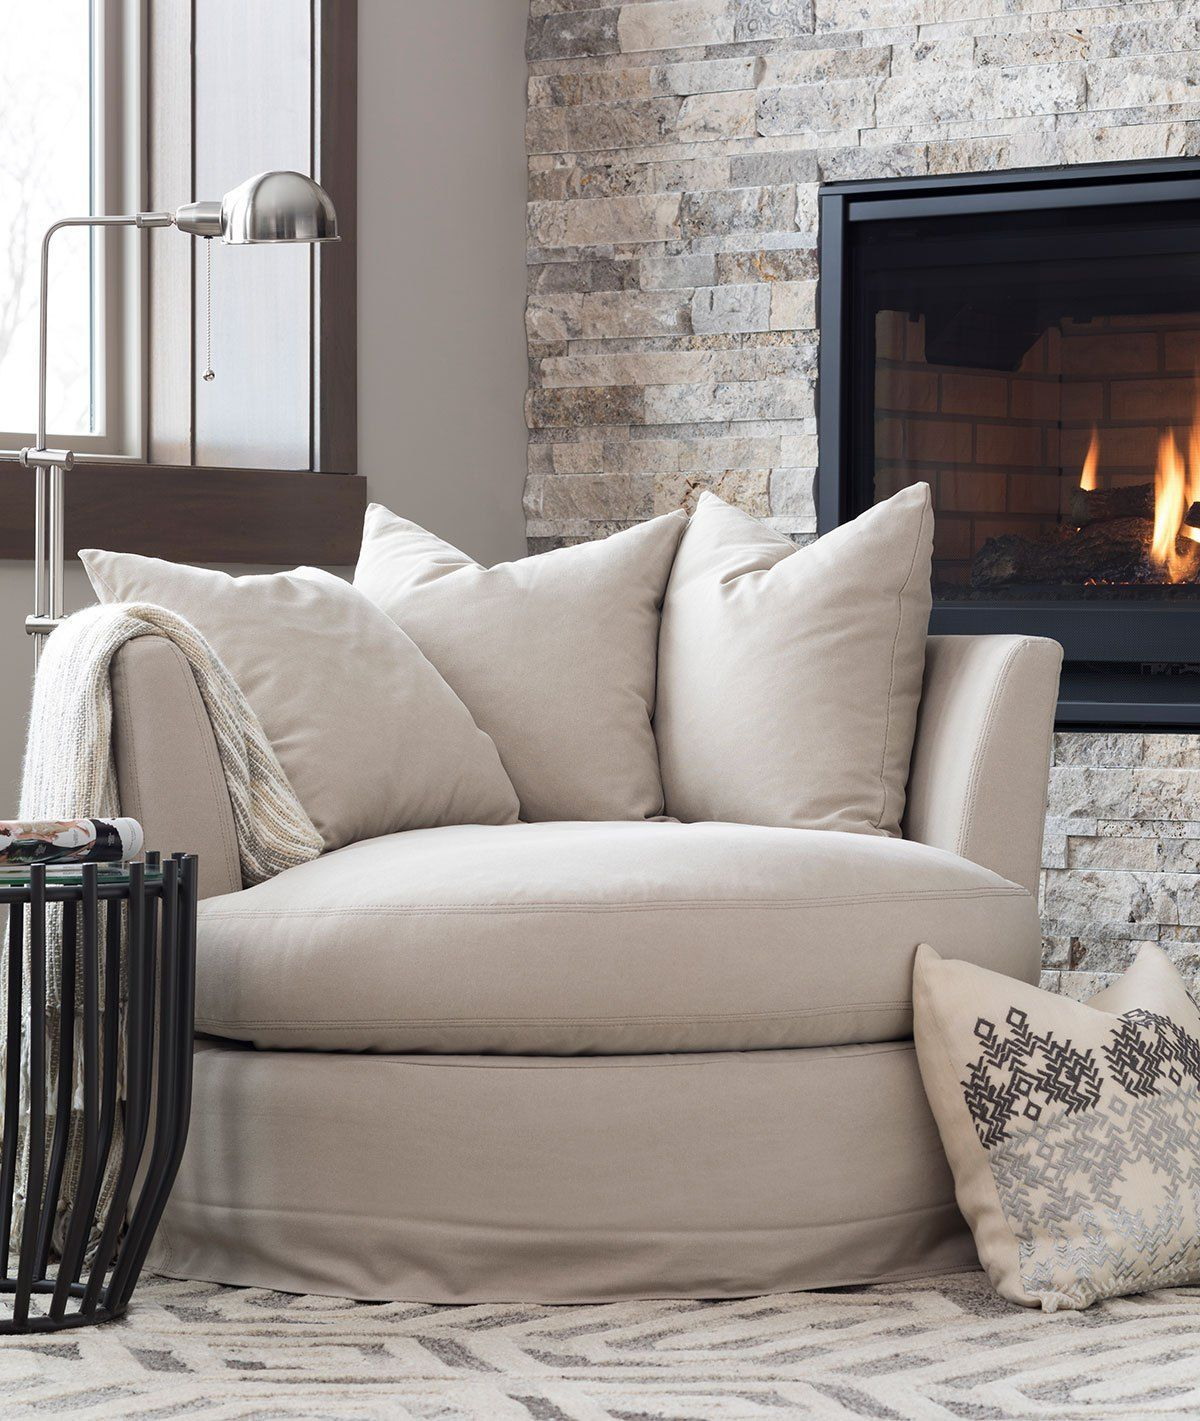 Small Living Room Ideas For More Seating And Style: Design Tips For Decorating With Neutrals